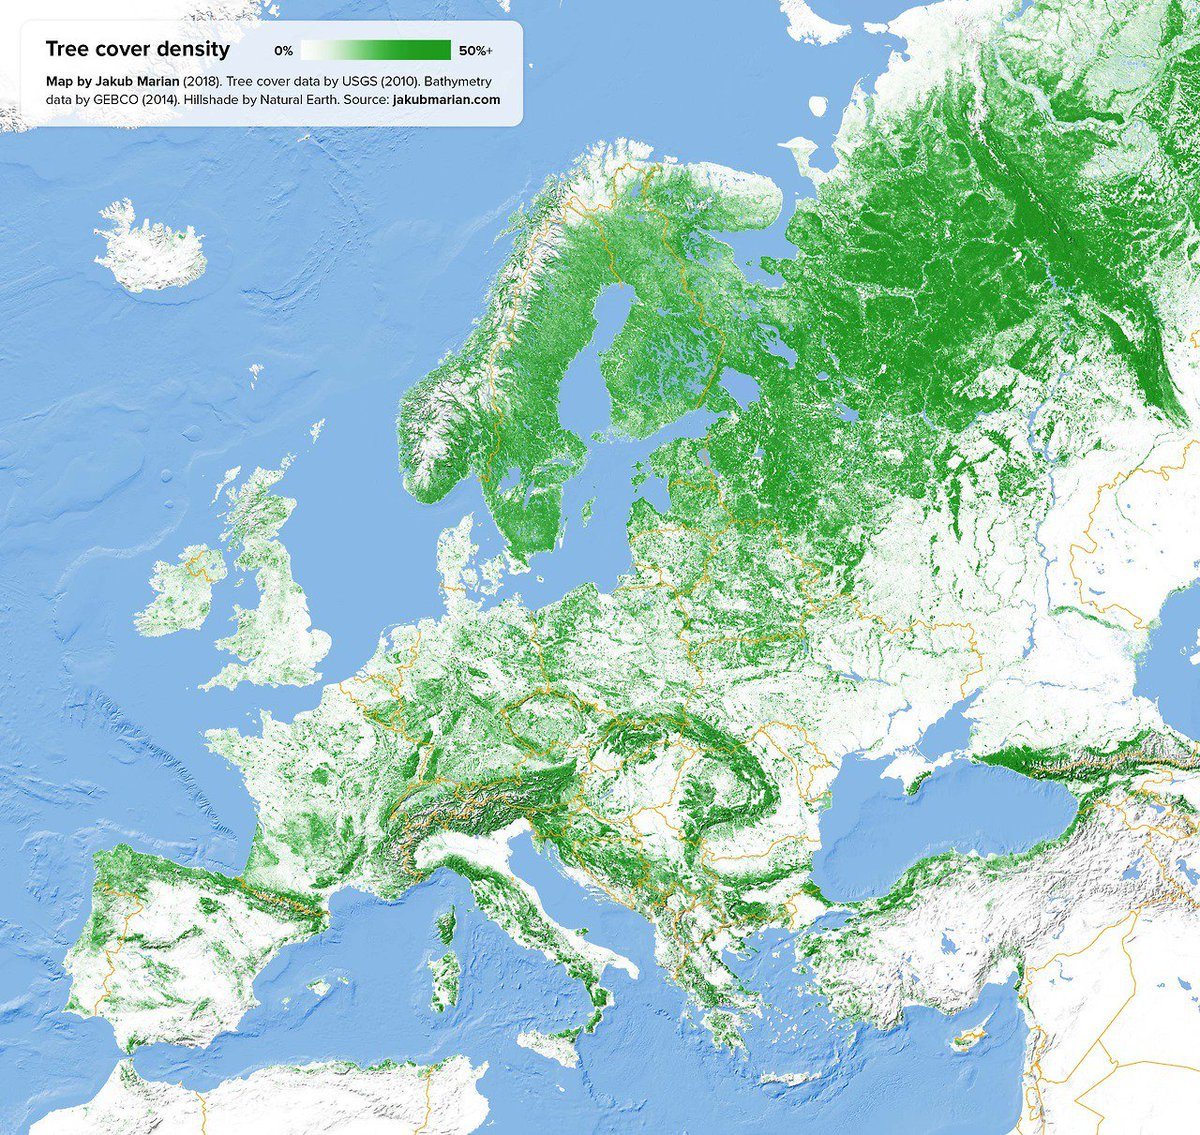 RT @PaulBanks84: Tree Cover Density of Europe. https://t.co/osaWpgvCG2 https://t.co/IaHdOXqWDx